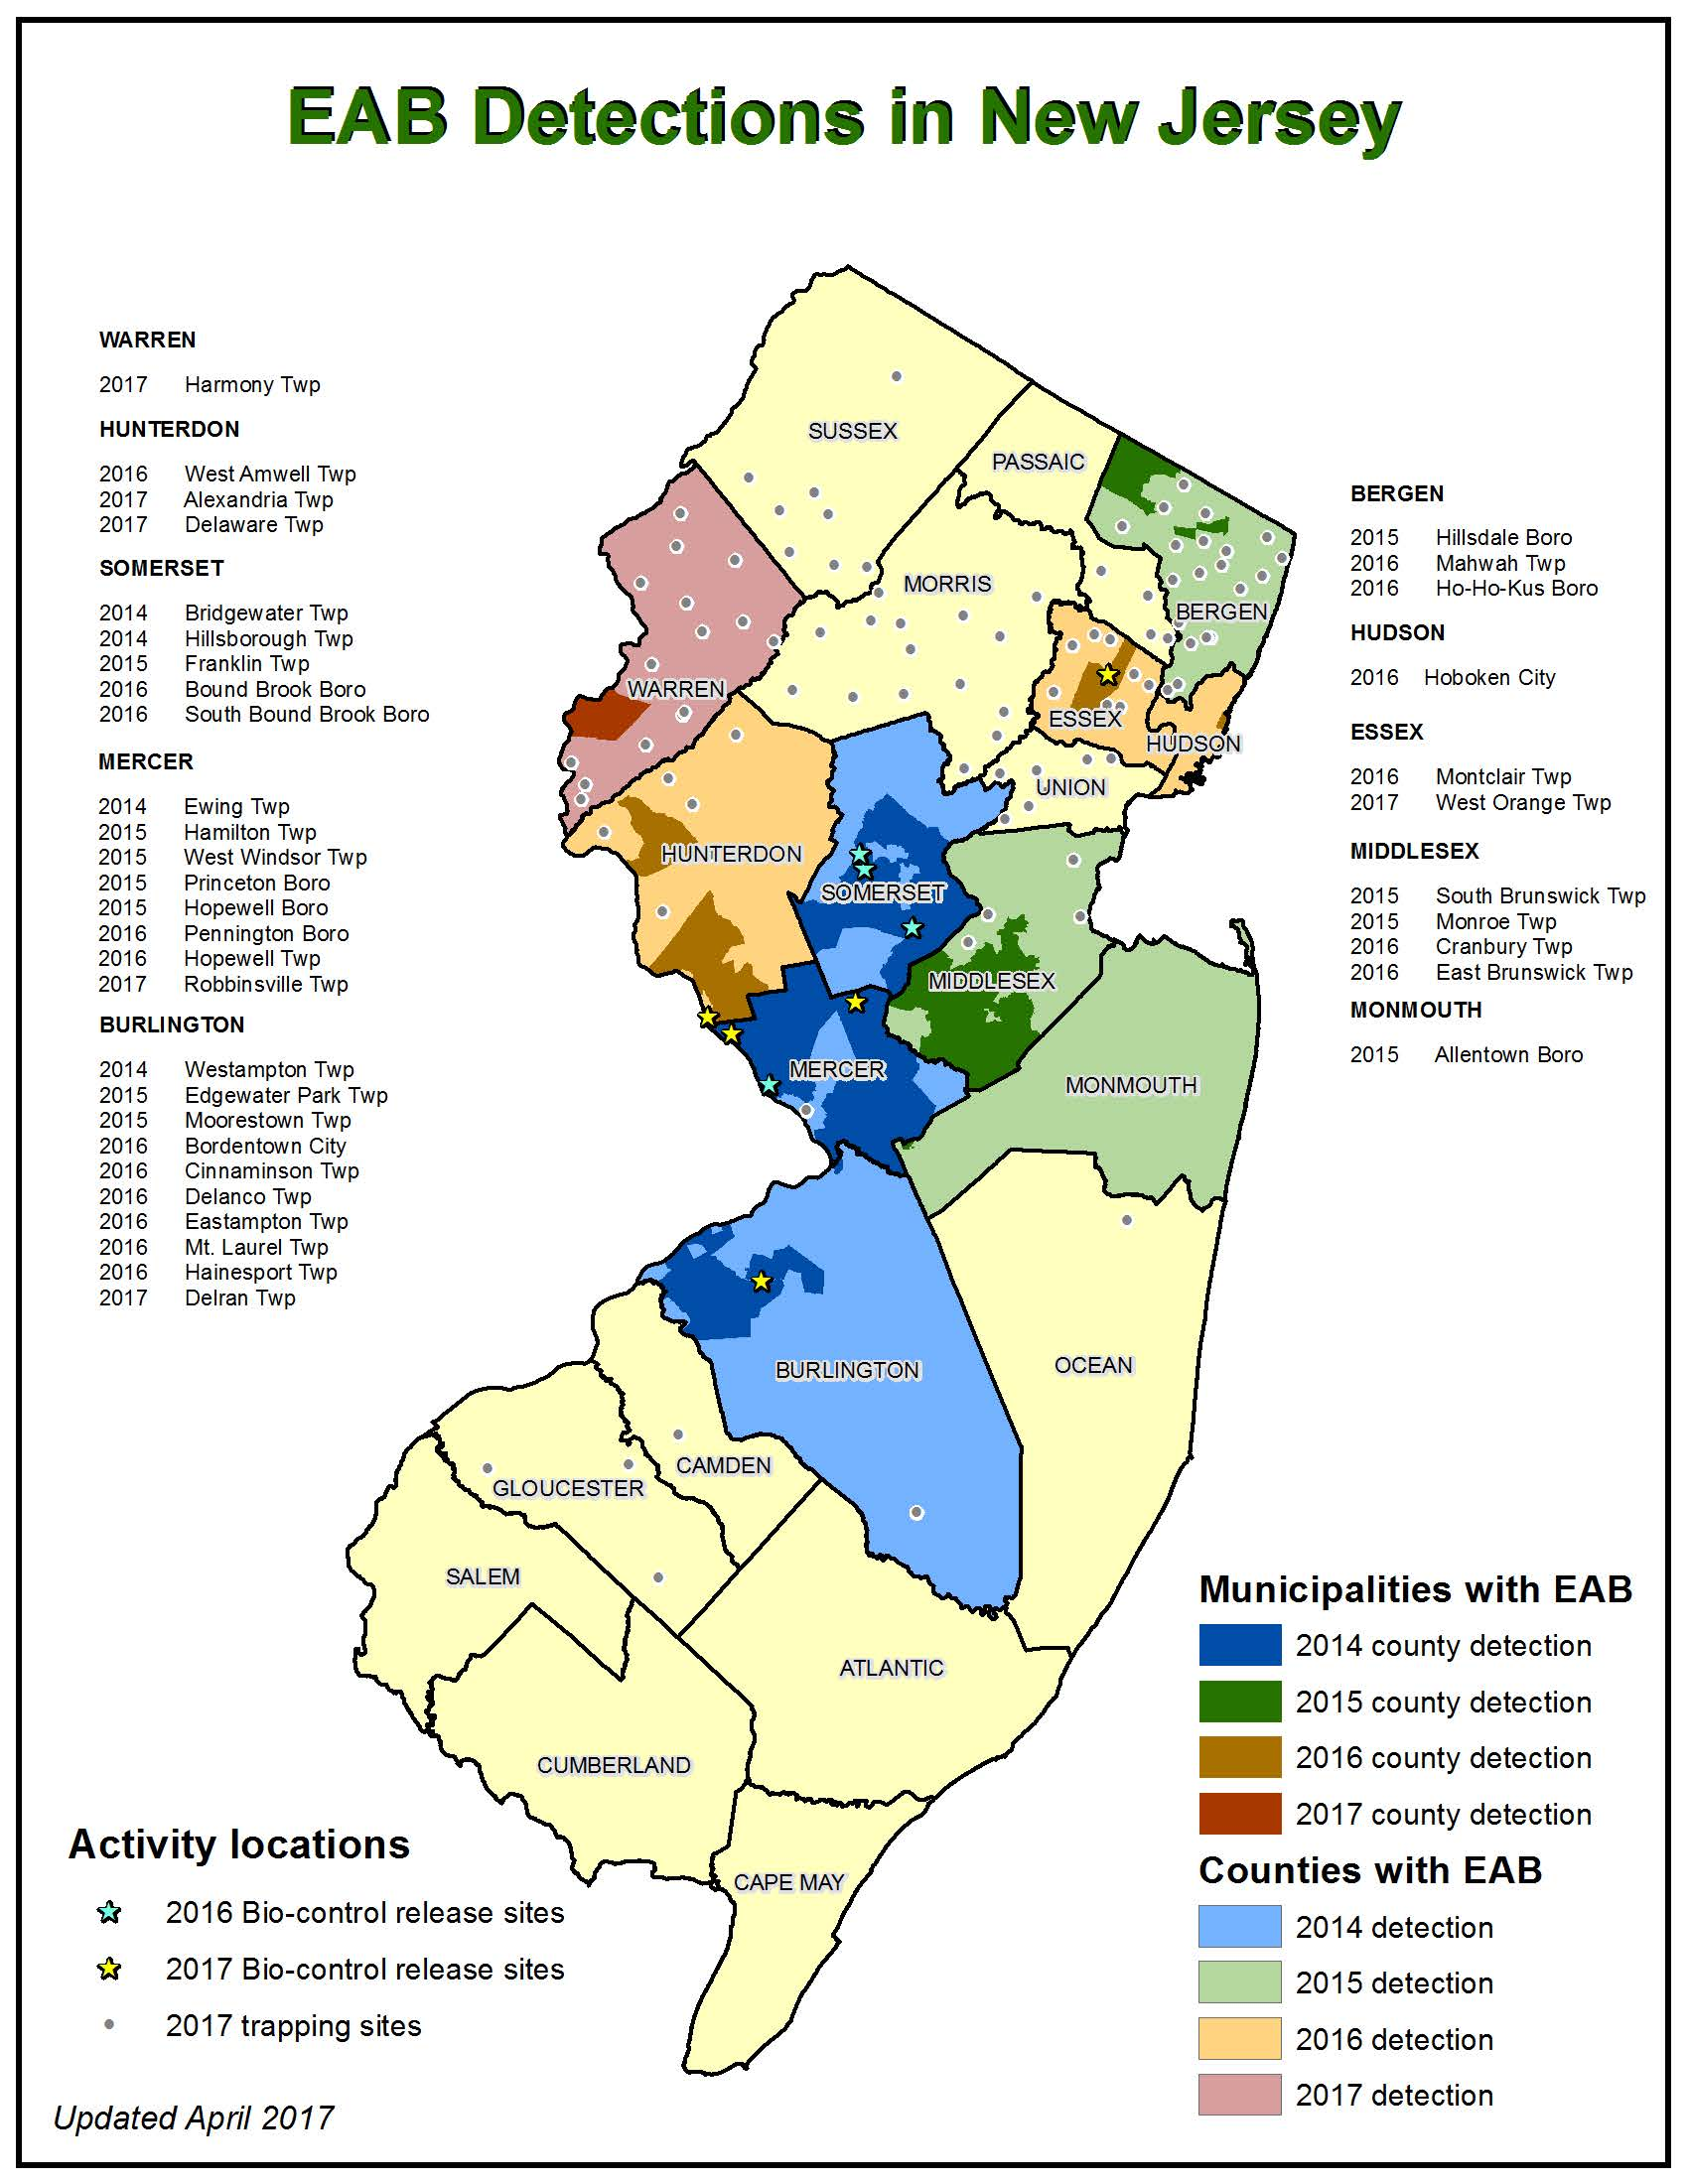 EAB Detections in New Jersey